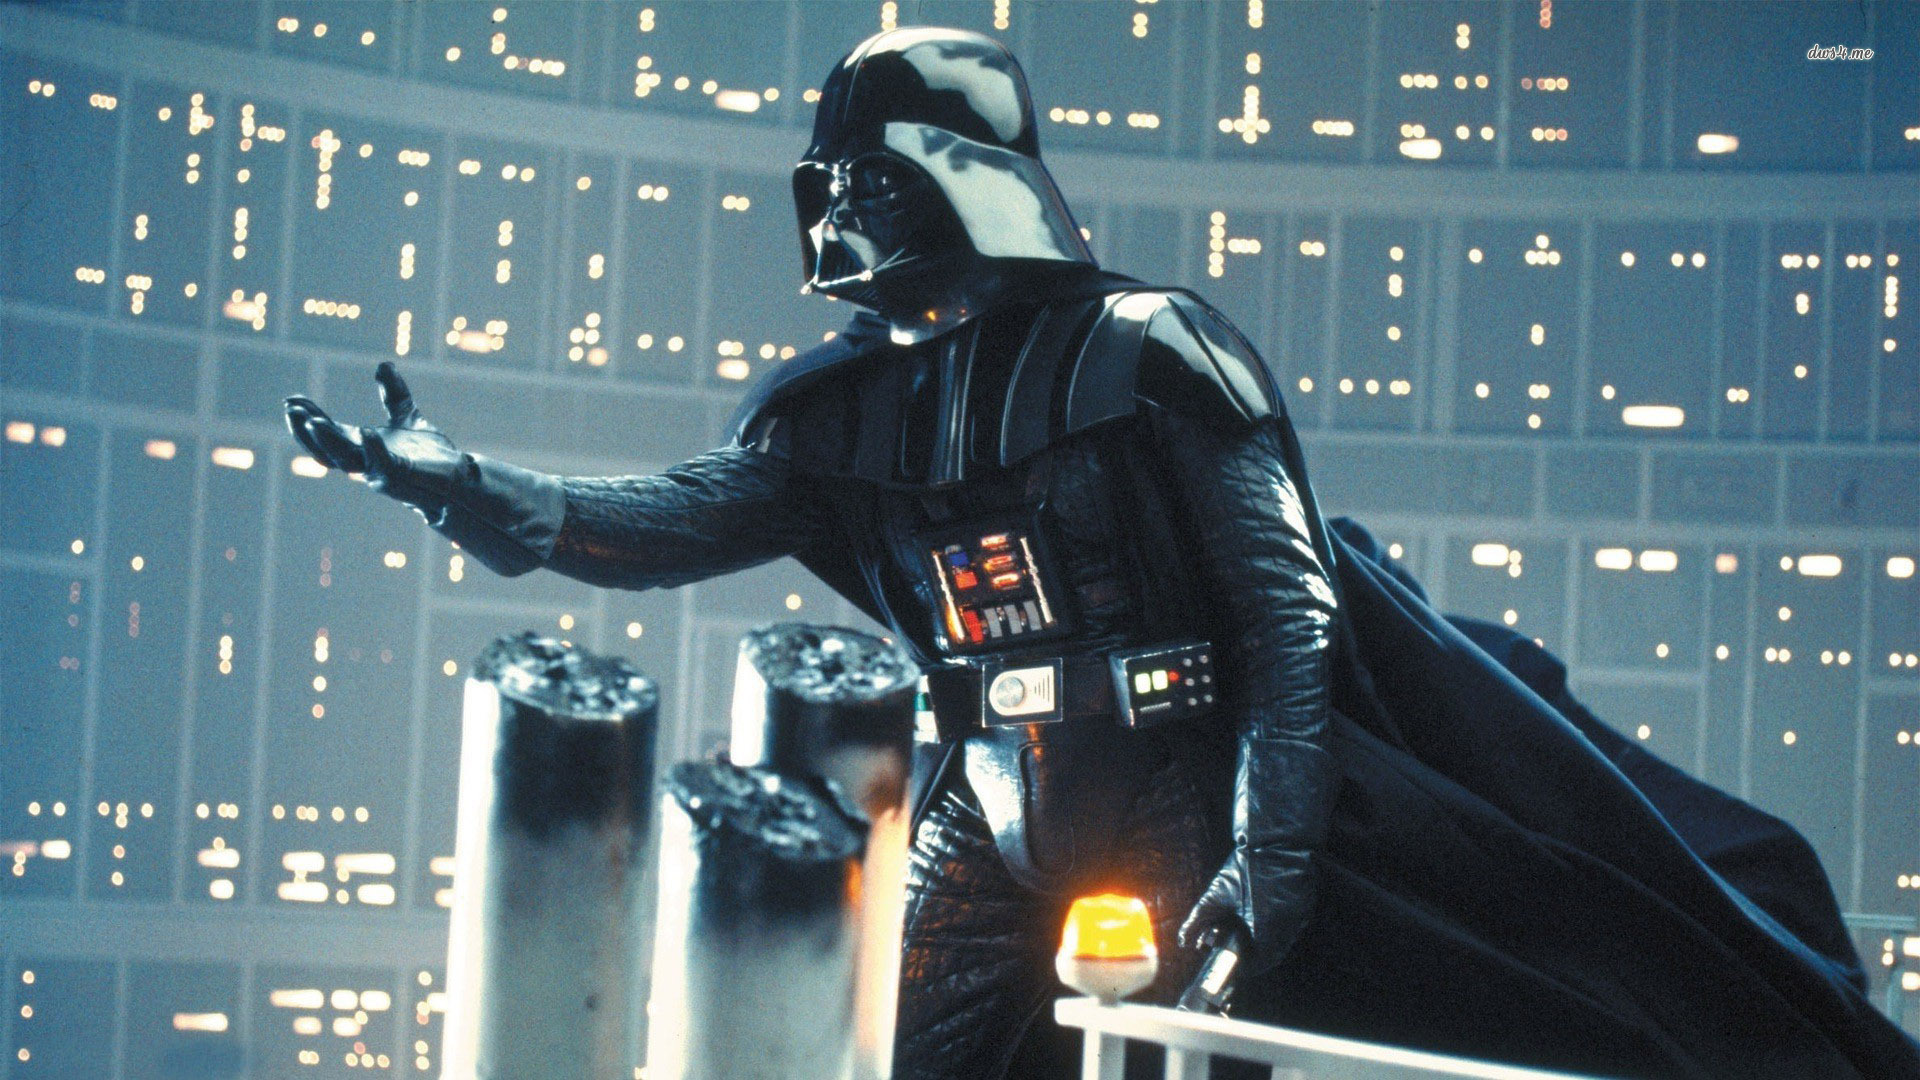 http://vignette3.wikia.nocookie.net/natm/images/e/eb/Darth-hand-james-earl-jones-is-officially-returning-as-darth-vader-the-original-voice-of-darth-vader-isn-t-quite-so-intimidating.jpeg/revision/latest?cb=20141226155701